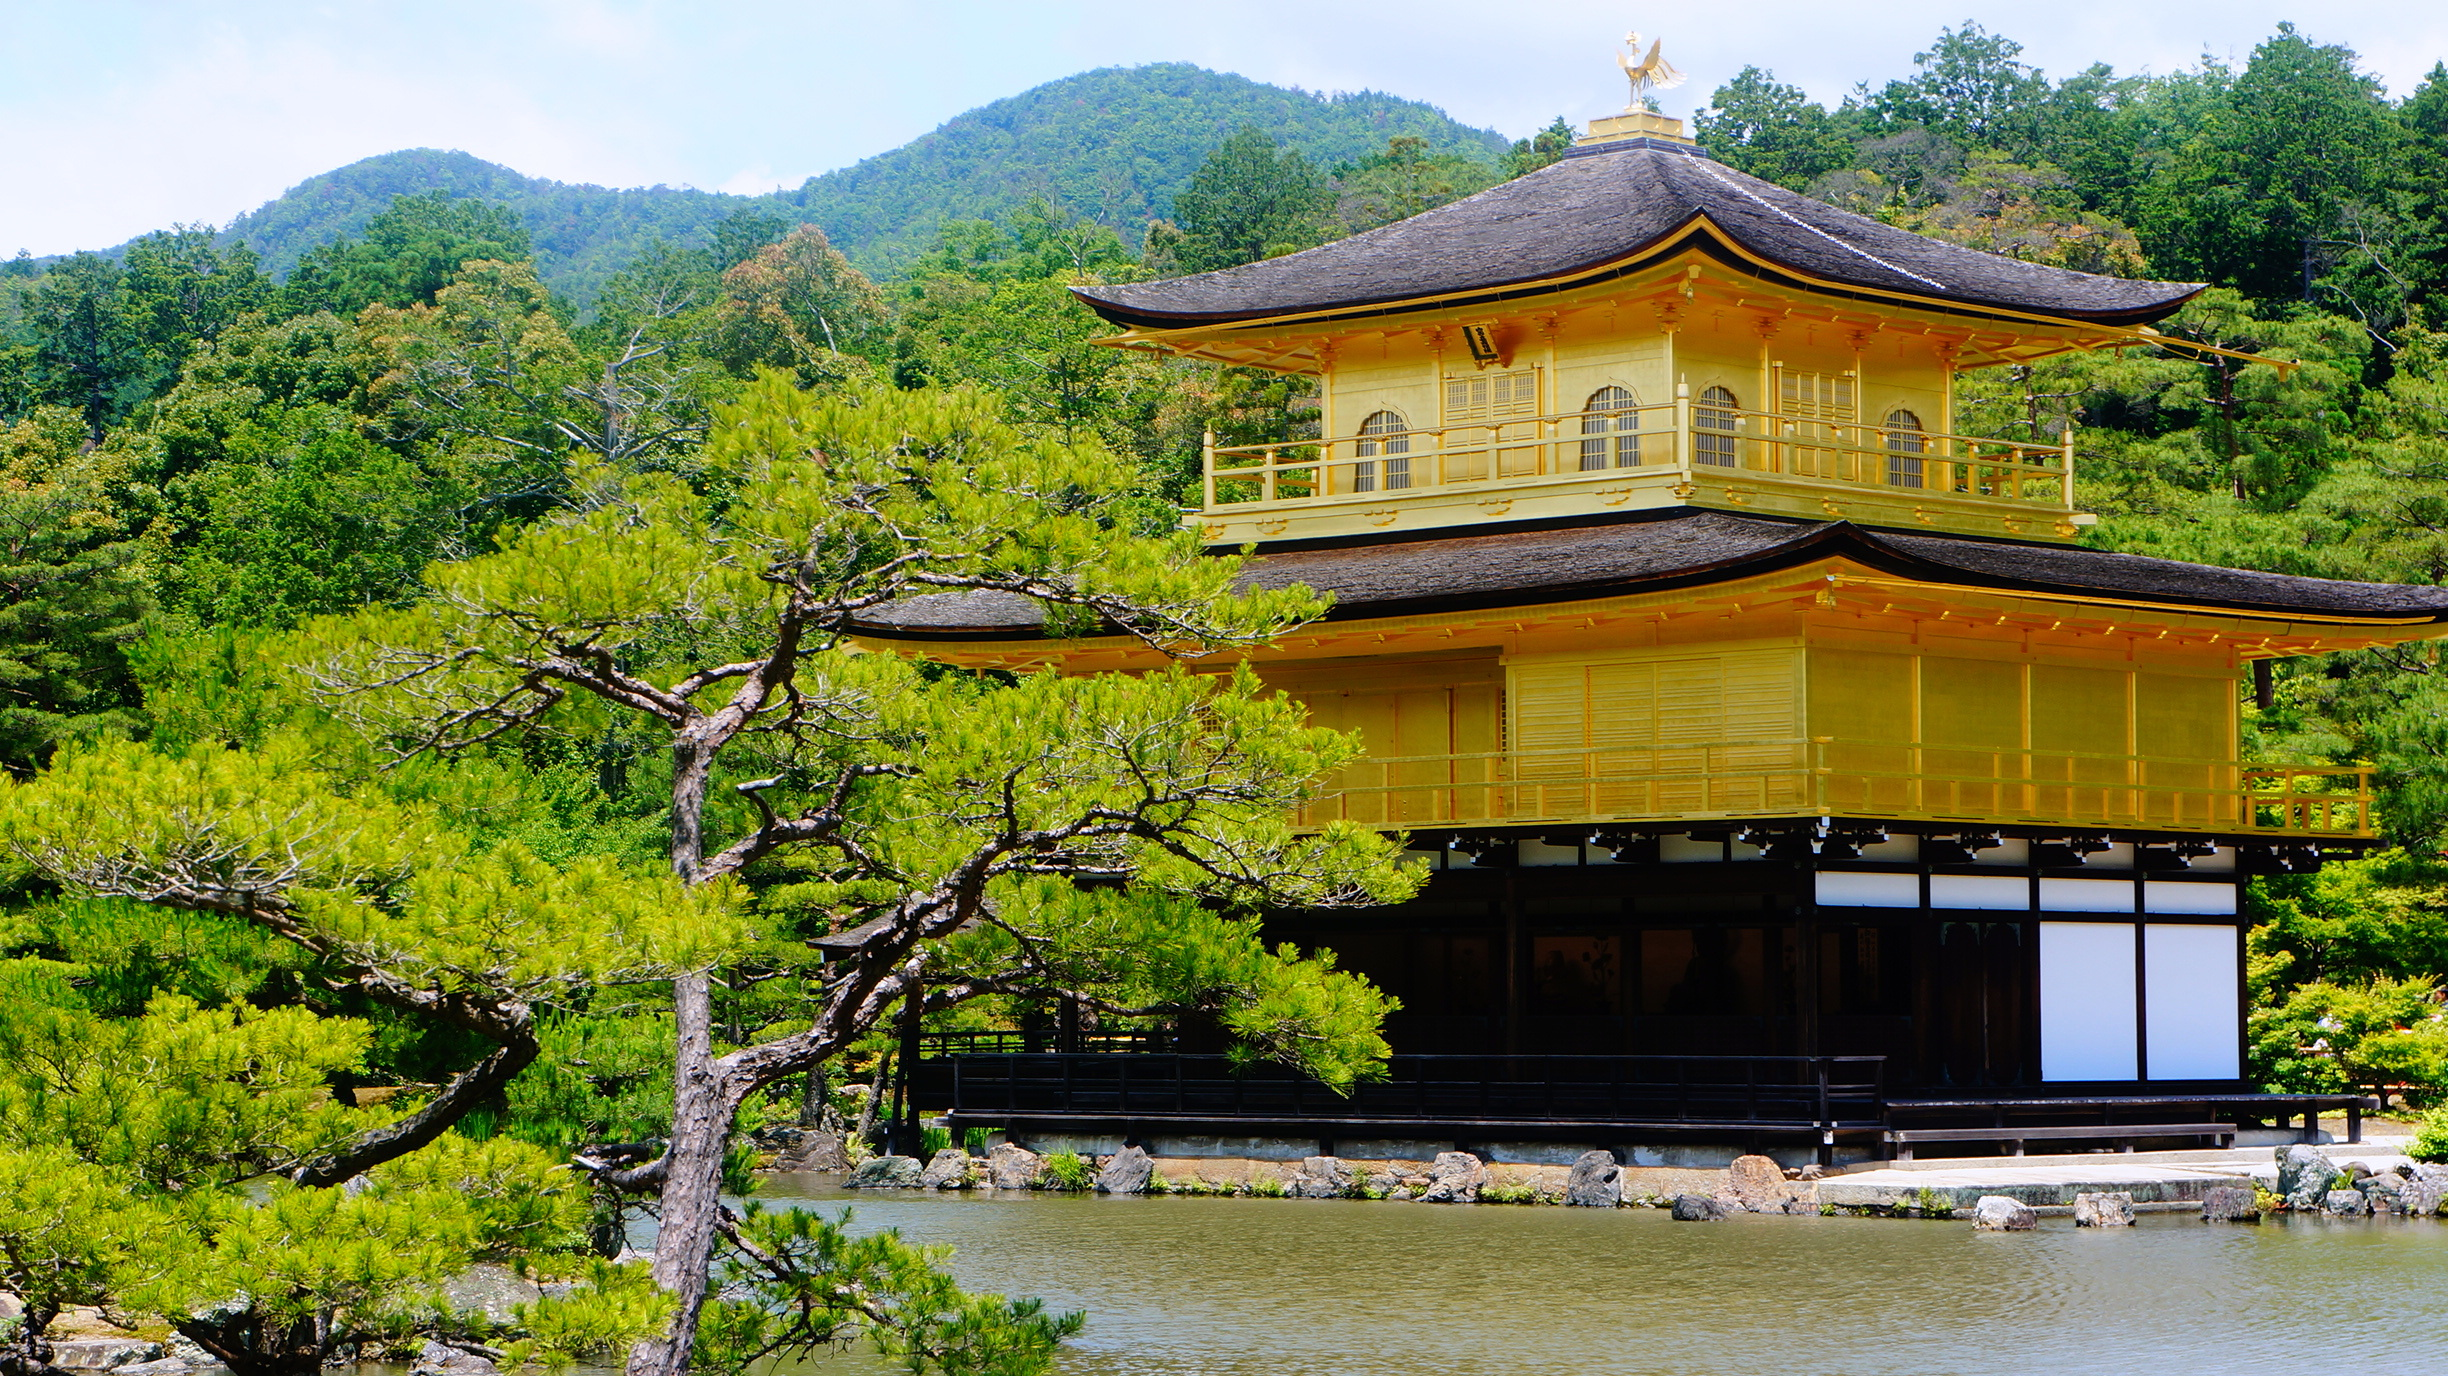 Kinkaku-ji is one of Kyoto's most magnificent temples.